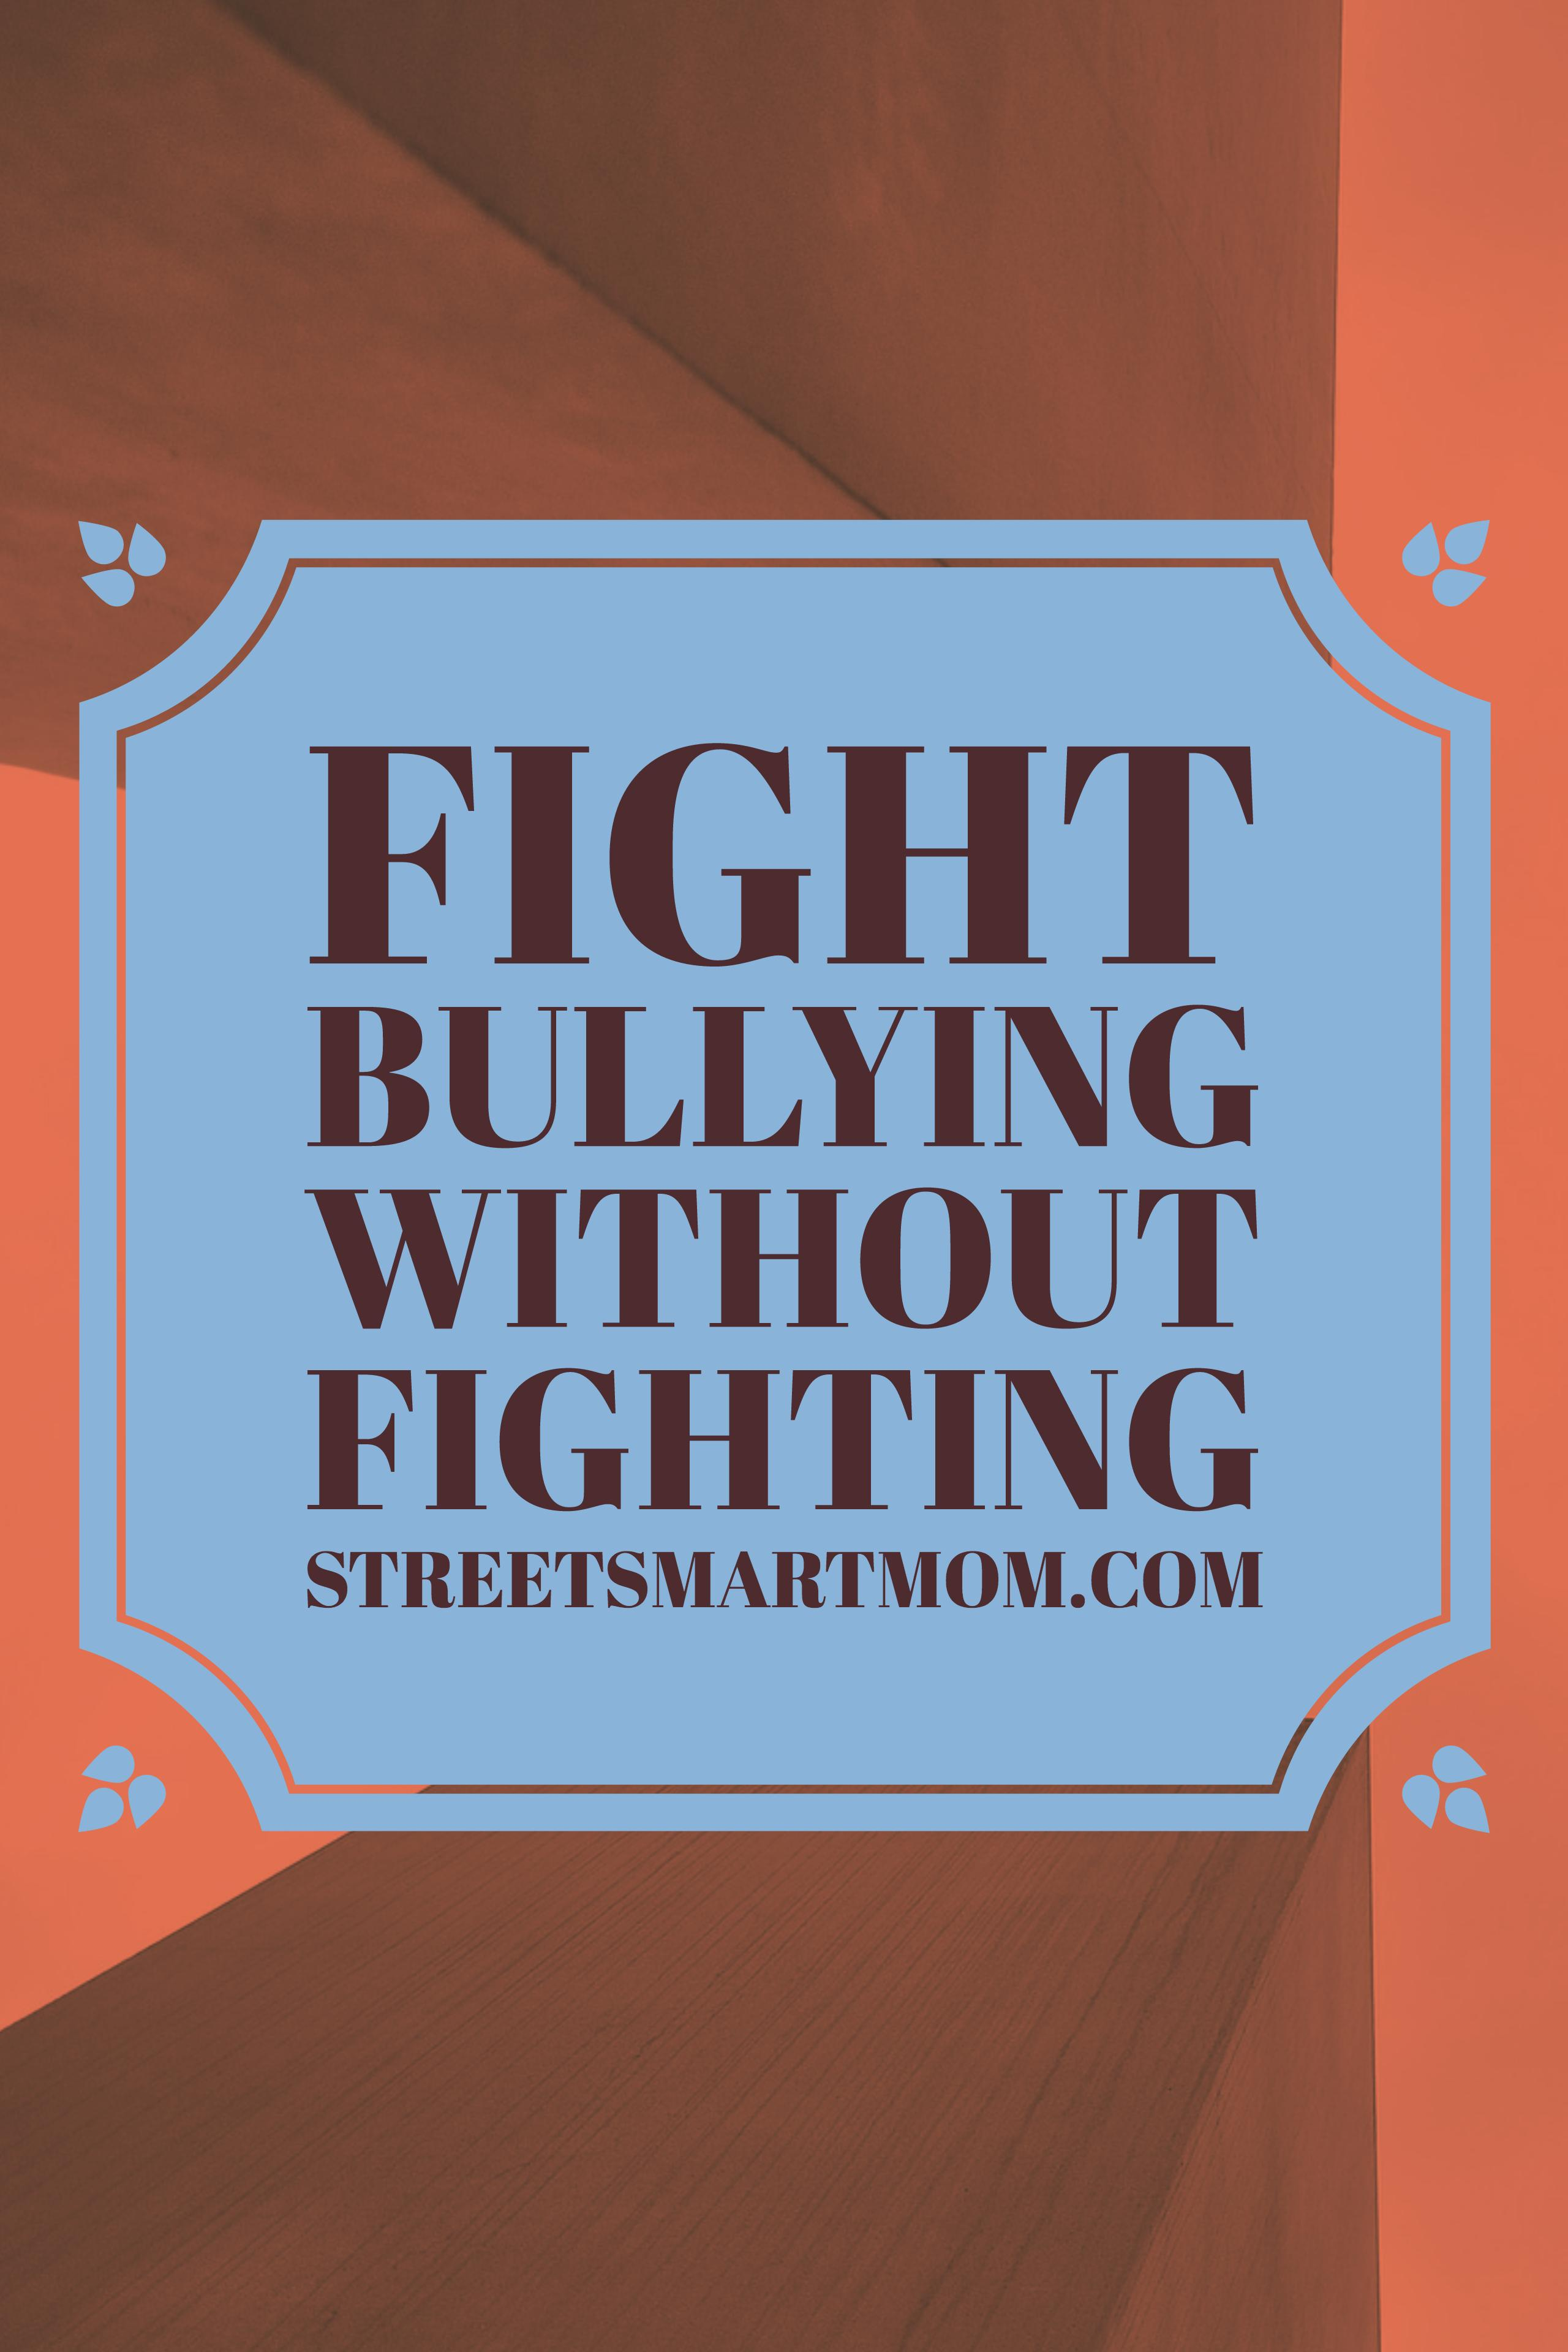 fight bullying without fighting on streetsmartmom.com